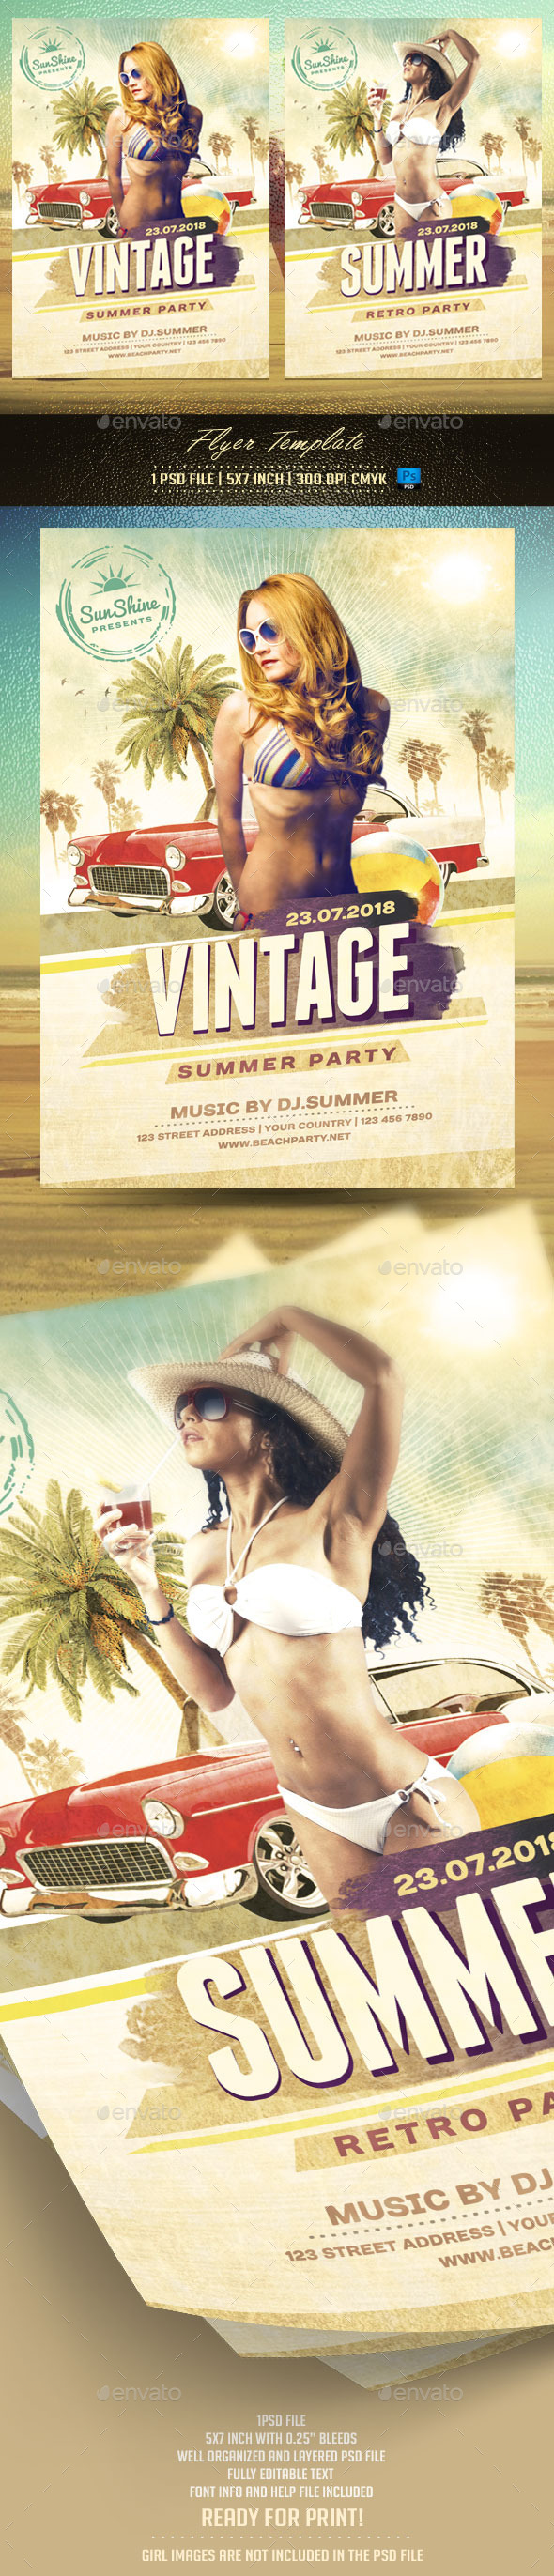 Vintage Summer Flyer Template - Clubs & Parties Events